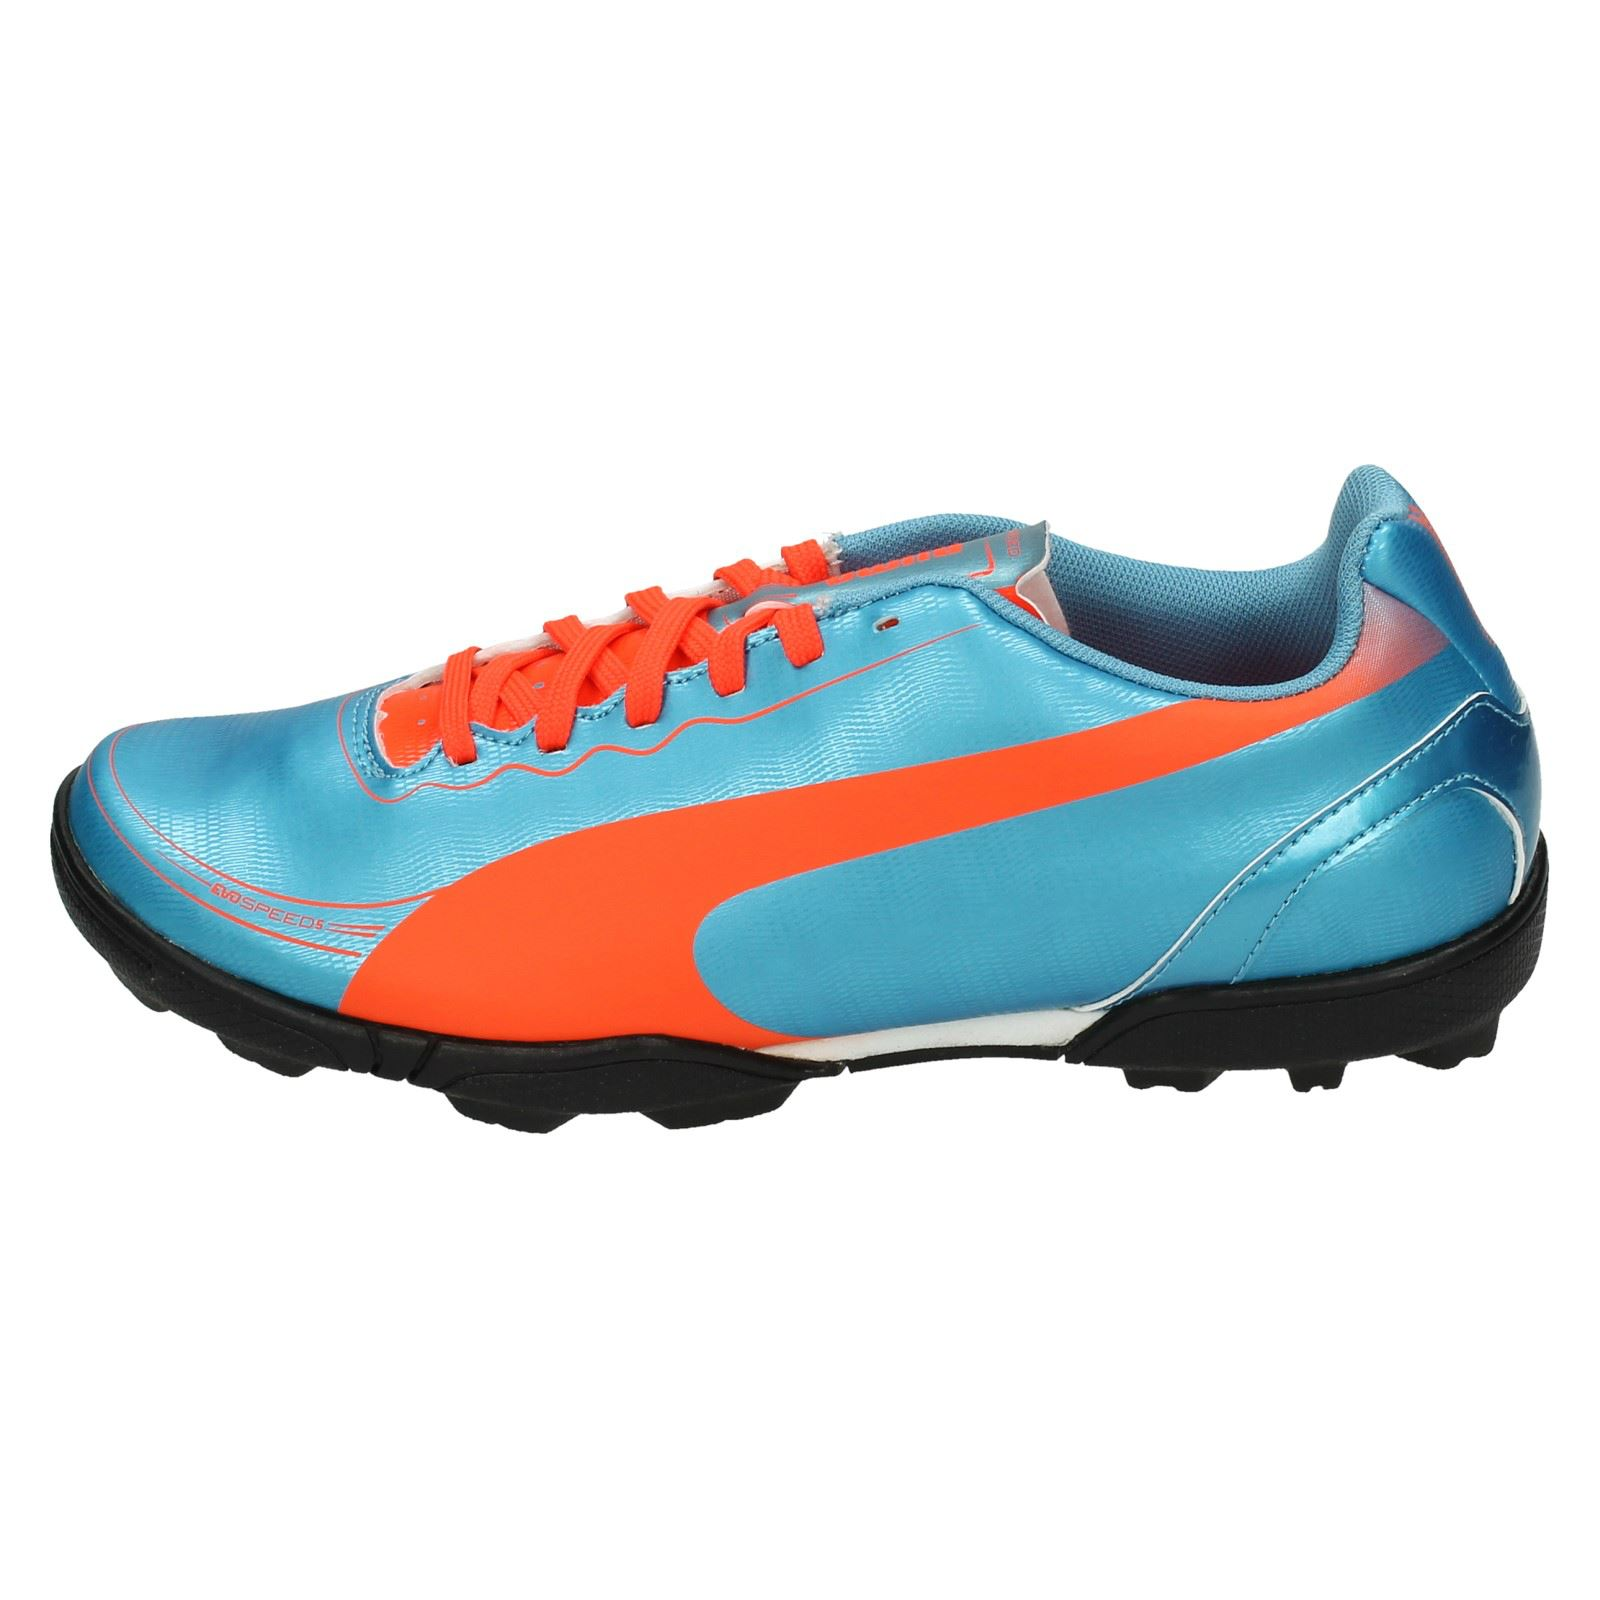 4ec3b3f1d4b3 Details about Puma Boys Astro Turf Football Trainers  Evo Speed 5.2 TT JR